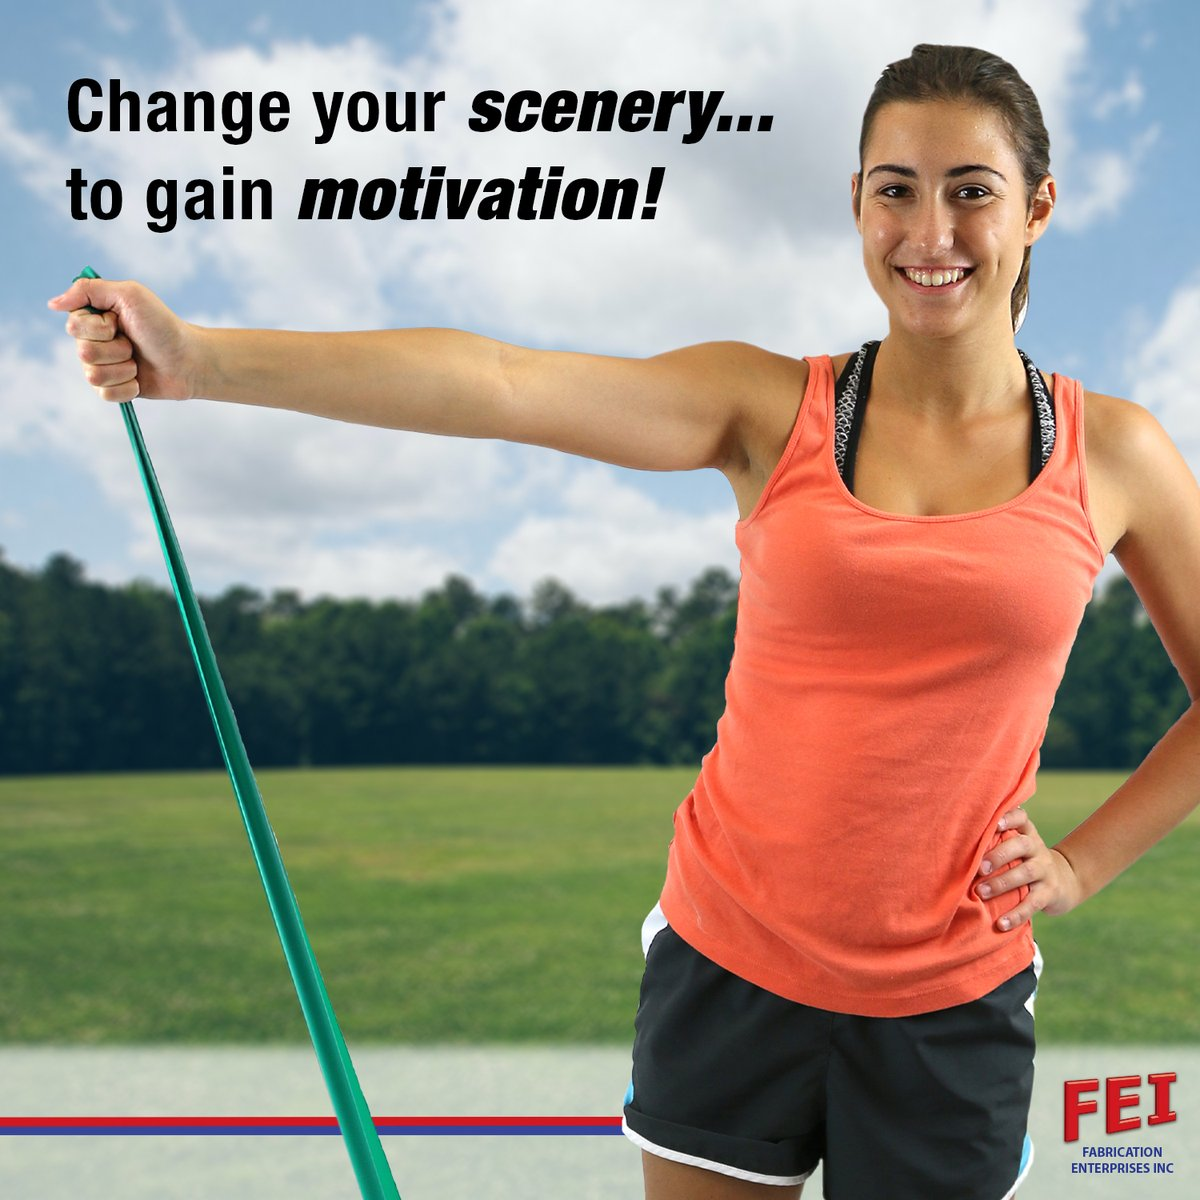 Are you looking for #motivation to workout? Try changing where you workout. A change of scenery can give you all the motivation you need!  #MondayMotivation #Fitness